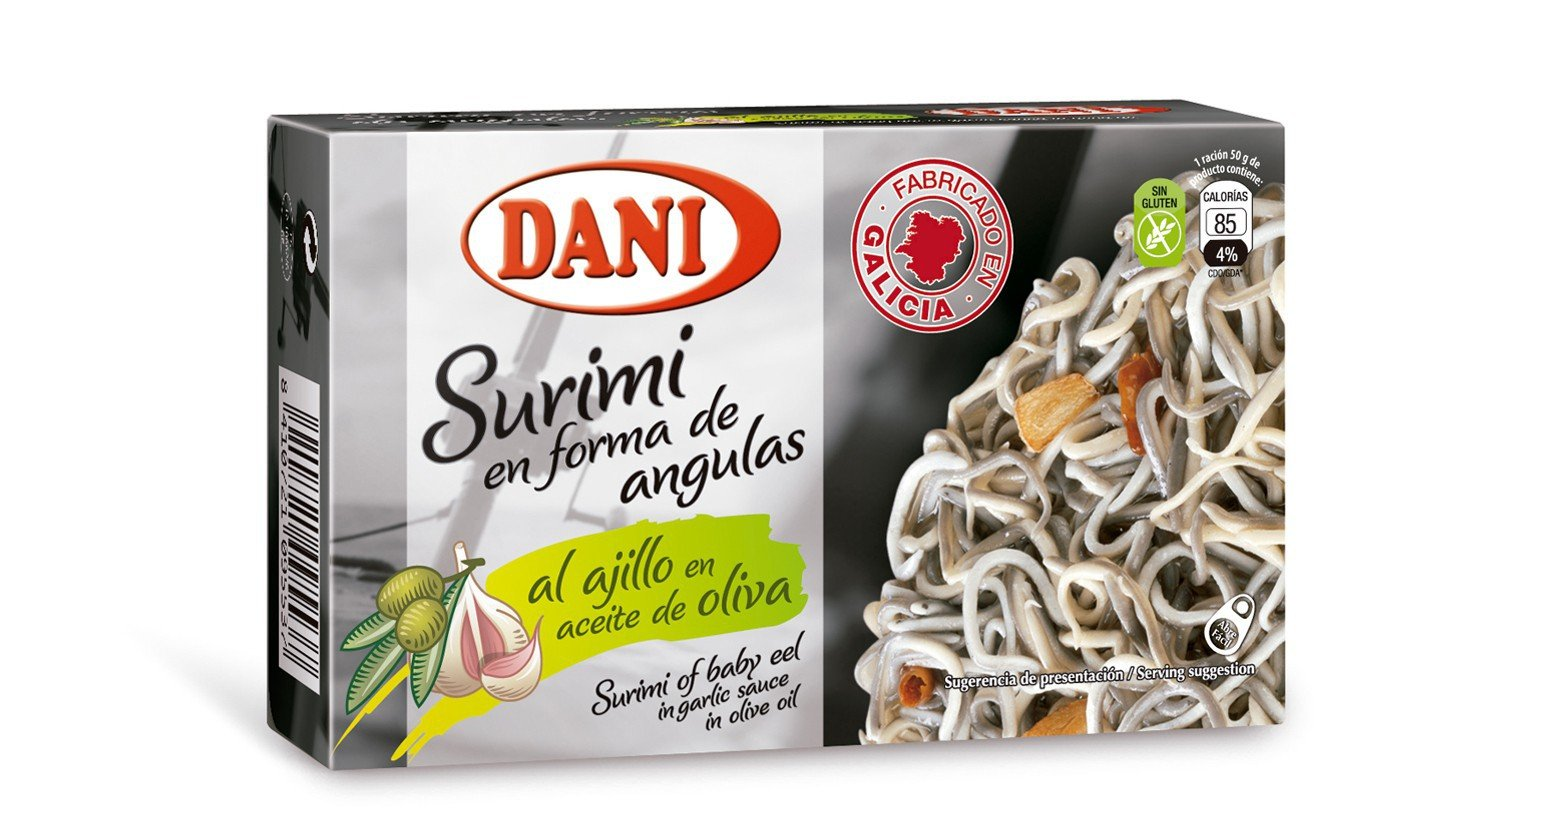 Surimi of Baby Eels 13 Pack in Garlic and Olive Sauce Gluten Free (Angulas, Eelbroods Surimi) by Dani